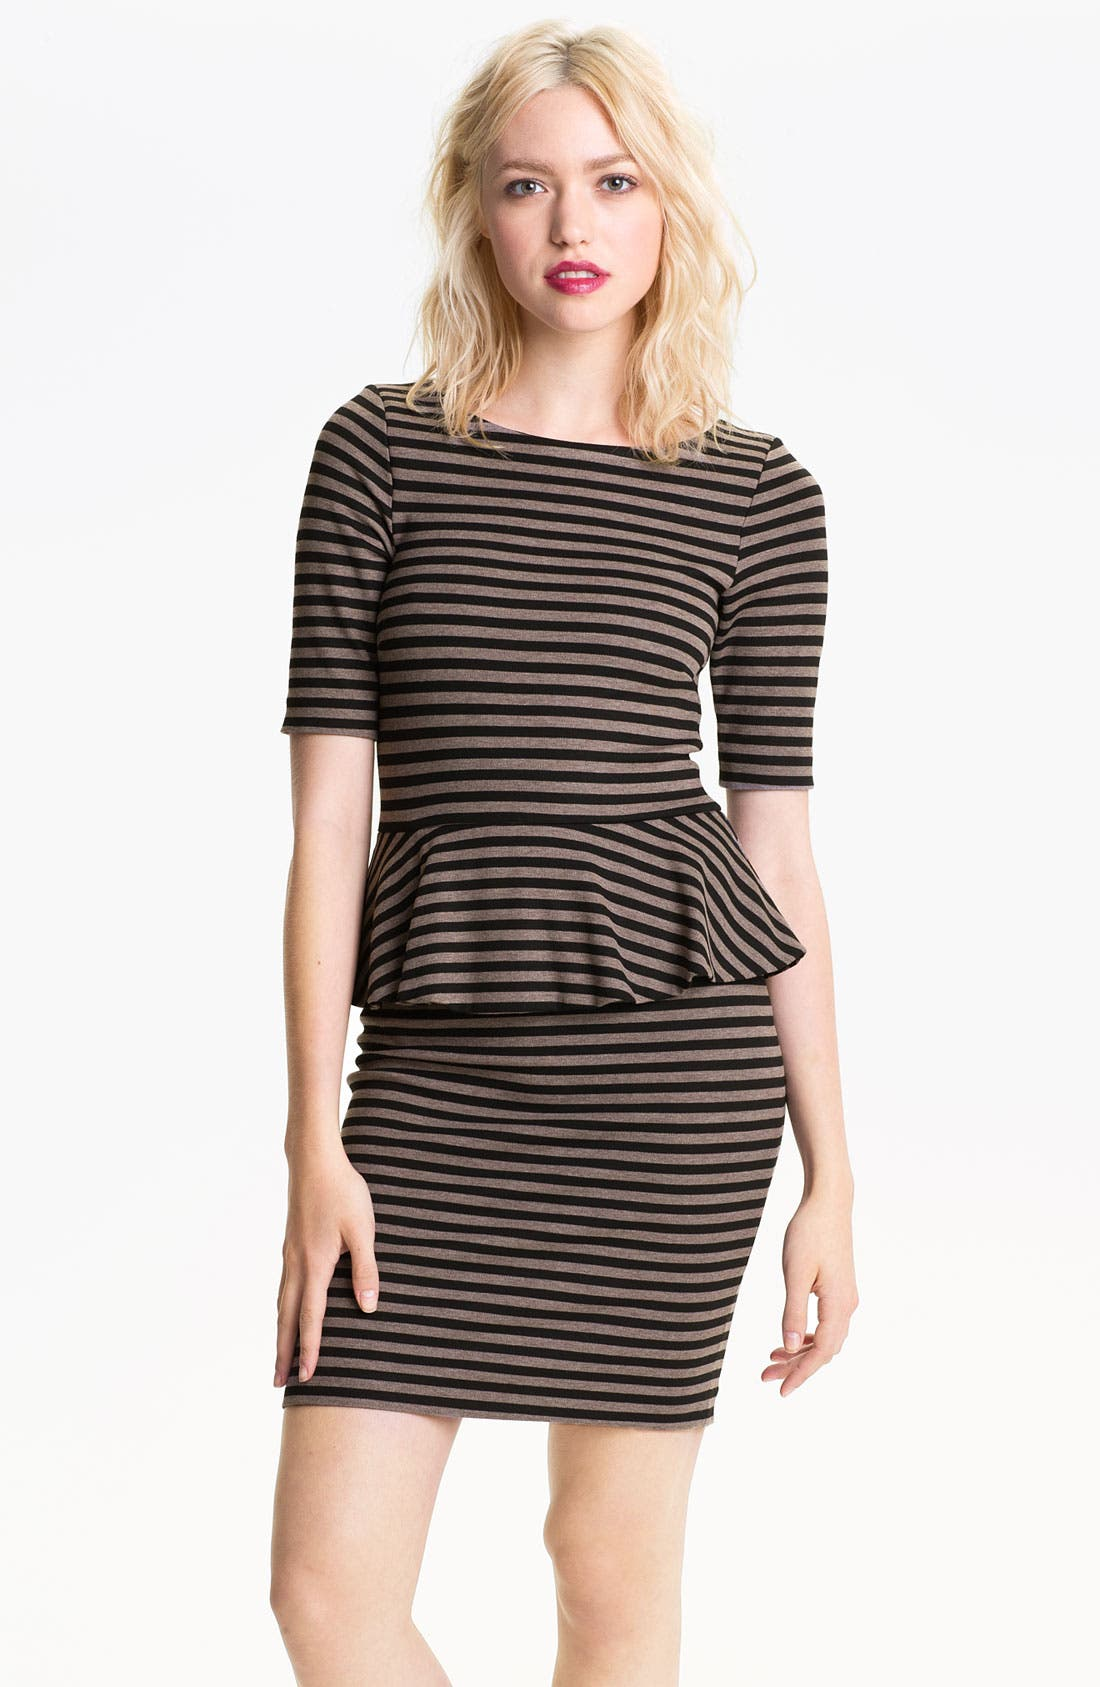 Alternate Image 1 Selected - Ella Moss 'Emily' Stripe Peplum Dress